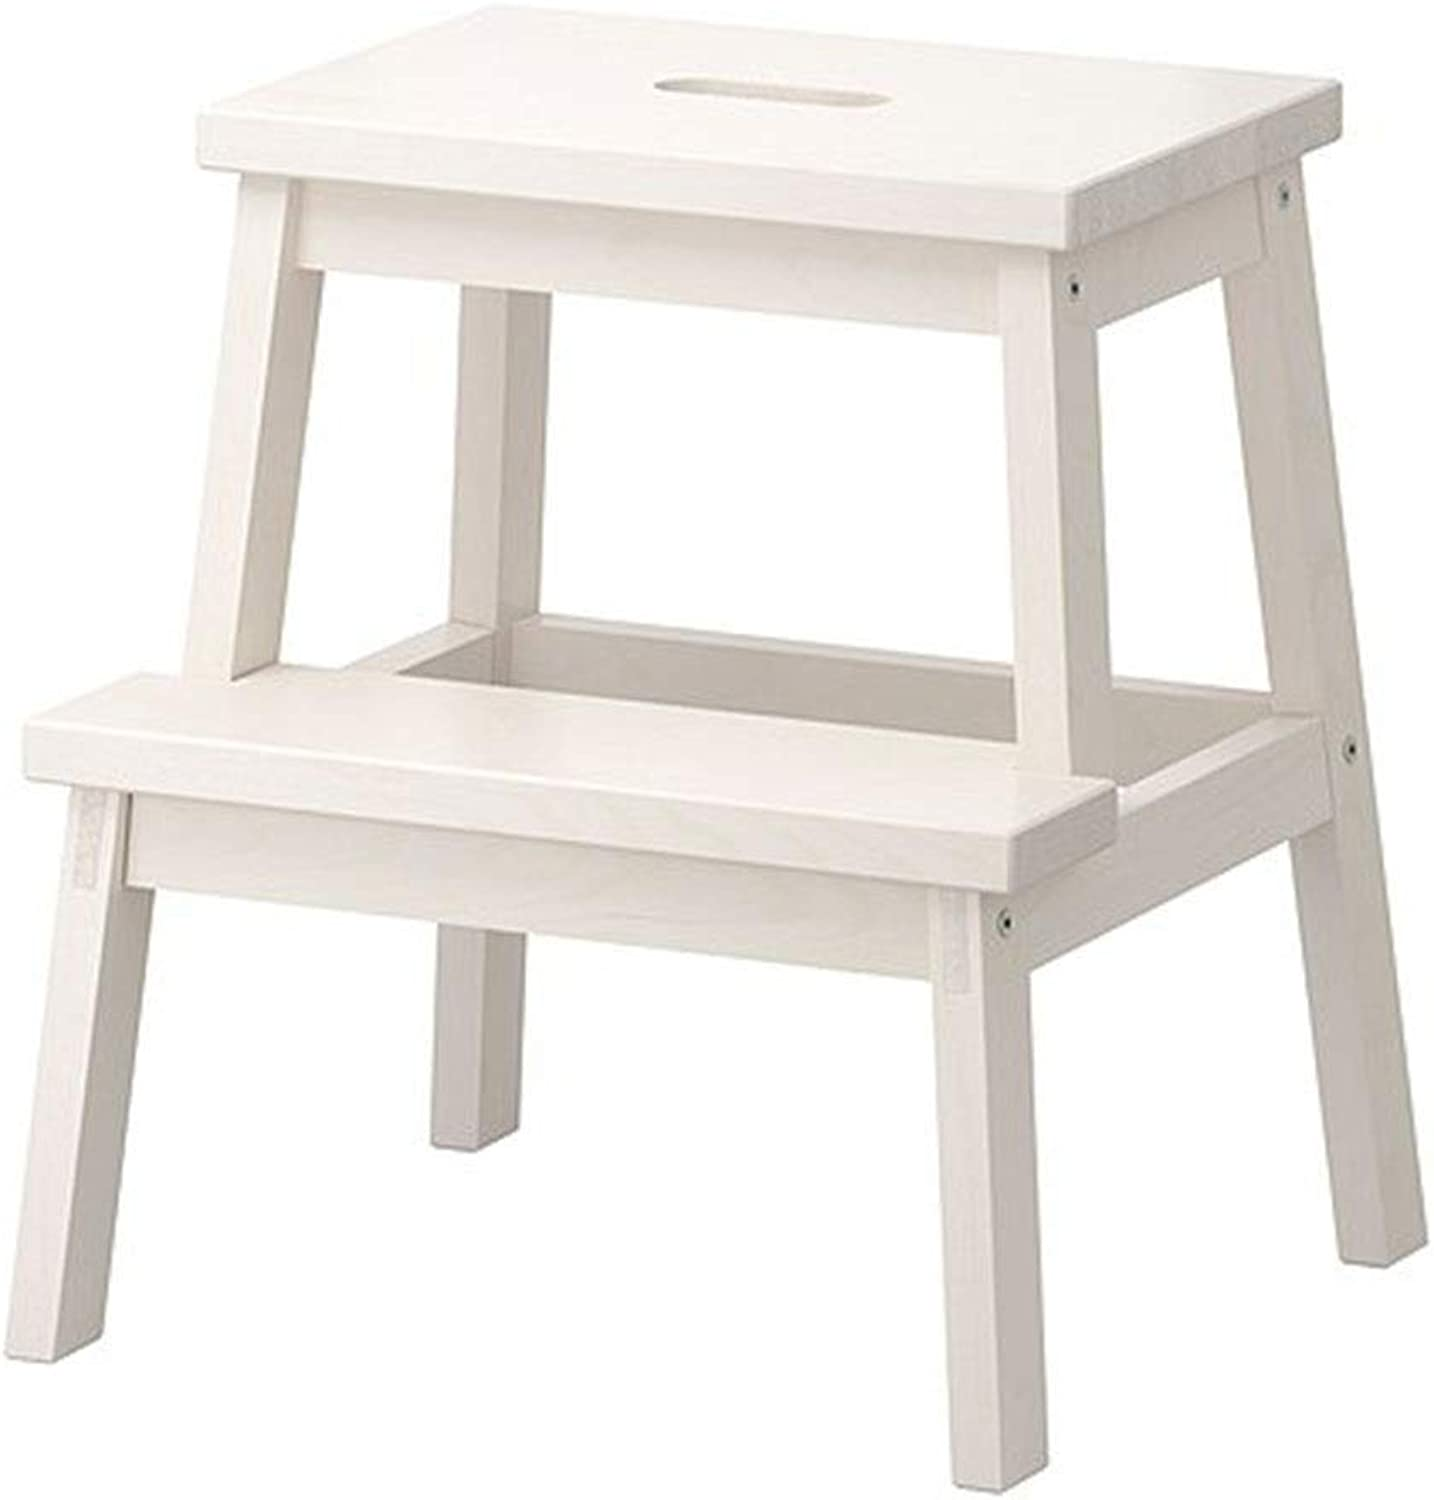 Yalztc-zyq16 Footstool White Stool Step Stool Ladder Footstool shoes Bench Stair Stool high Stool (color   Style A)